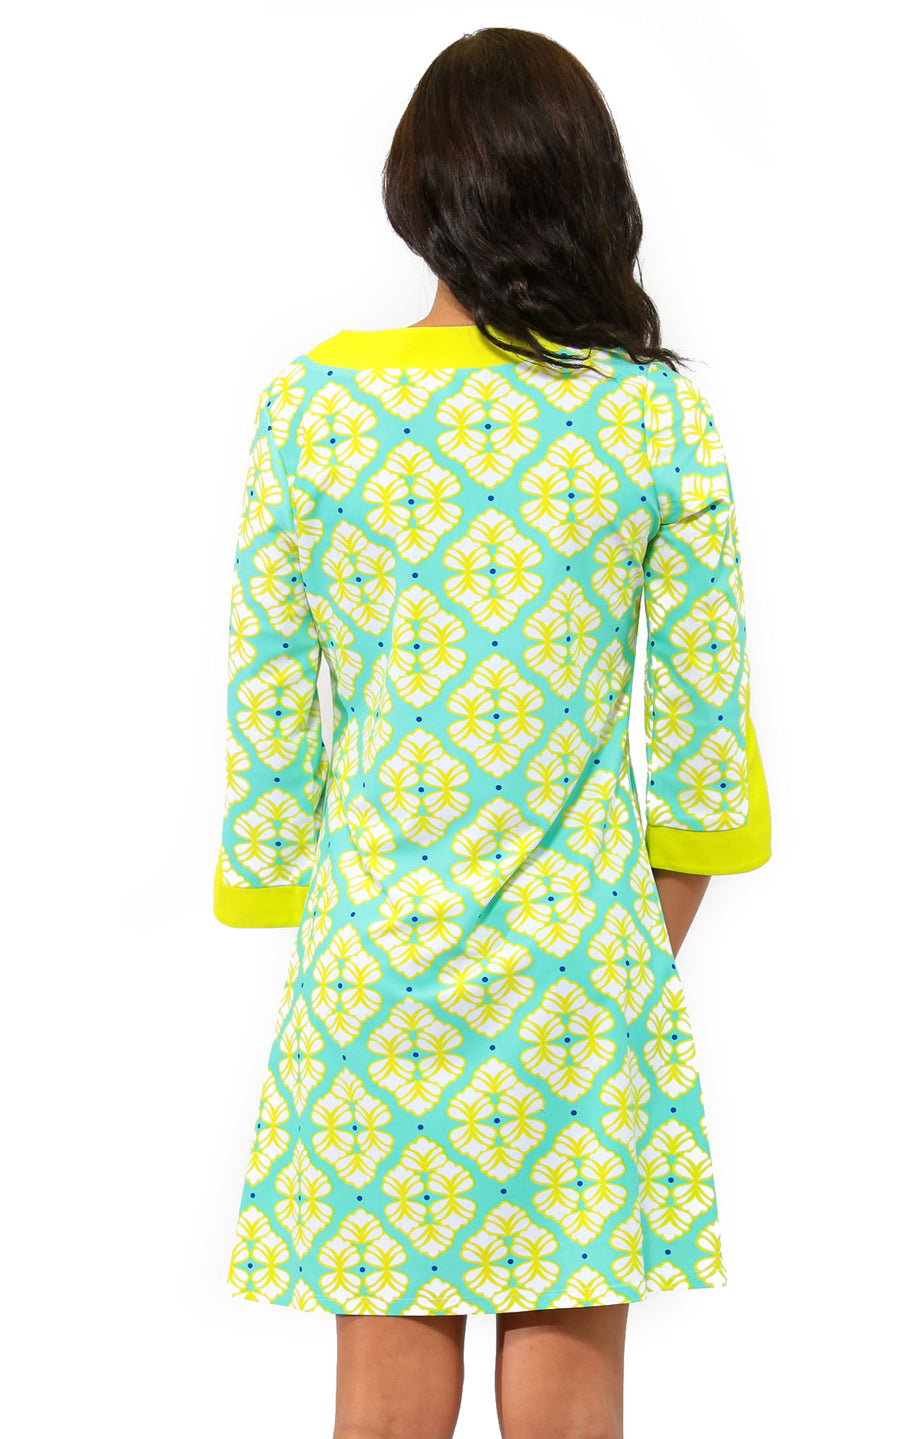 All For Color-Lime A Rita Prescot Lane Tunic Dress - FINAL SALE-Dresses